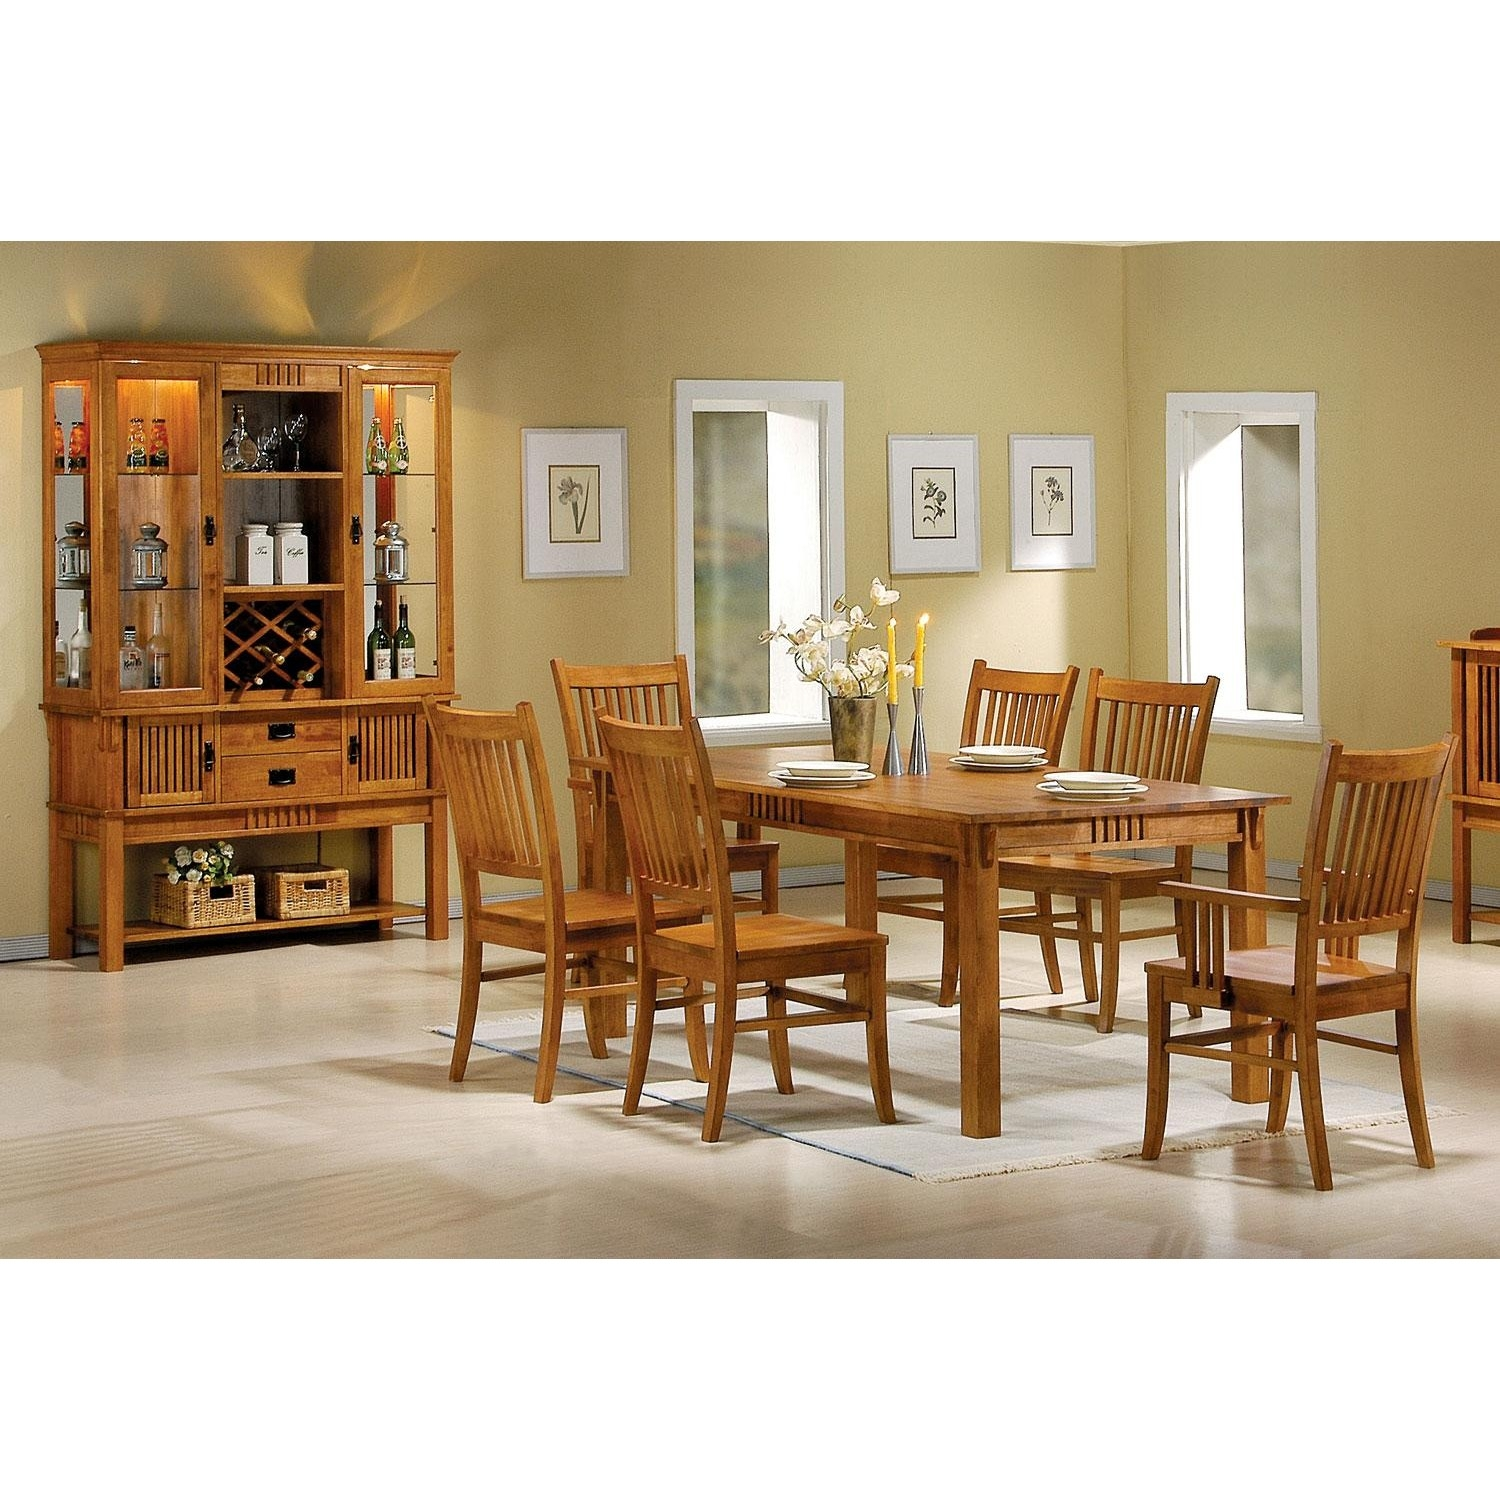 mission oak dining room chair ideas on foter rh foter com oak dining room table and chairs ebay oak dining room table and 4 chairs